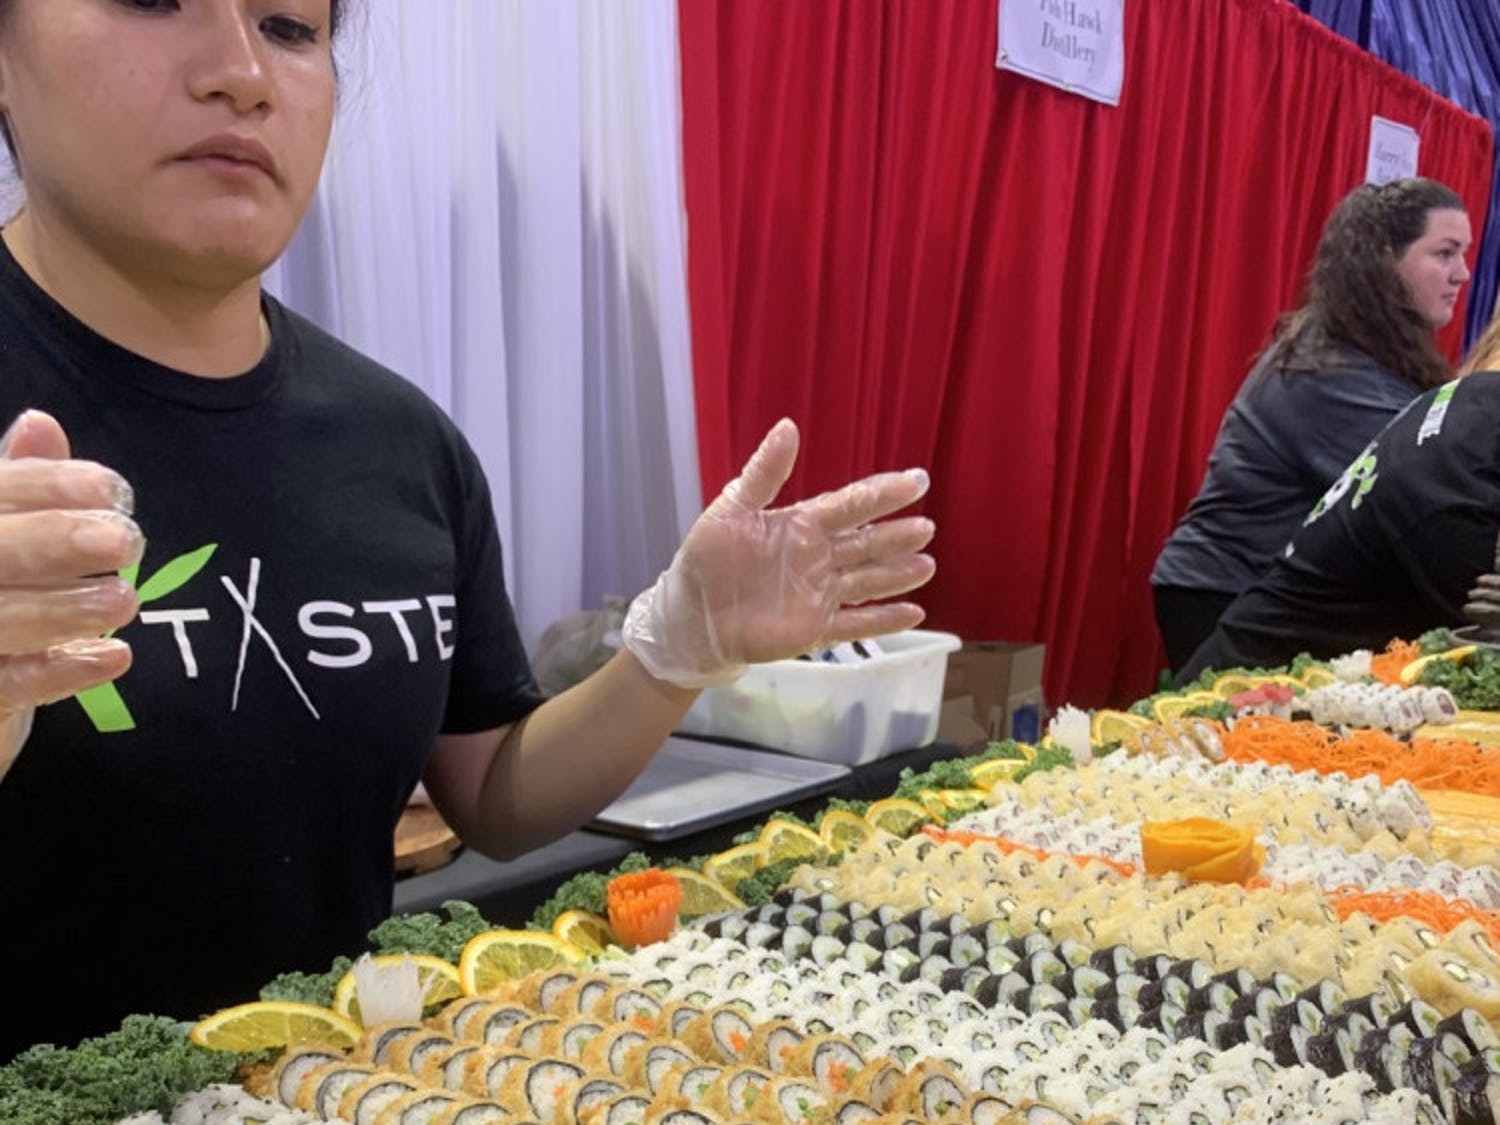 Taste of Greater Gainesville attendees samples sushi provided by Taste, a local restaurant that serves Pan-Asian cuisine.